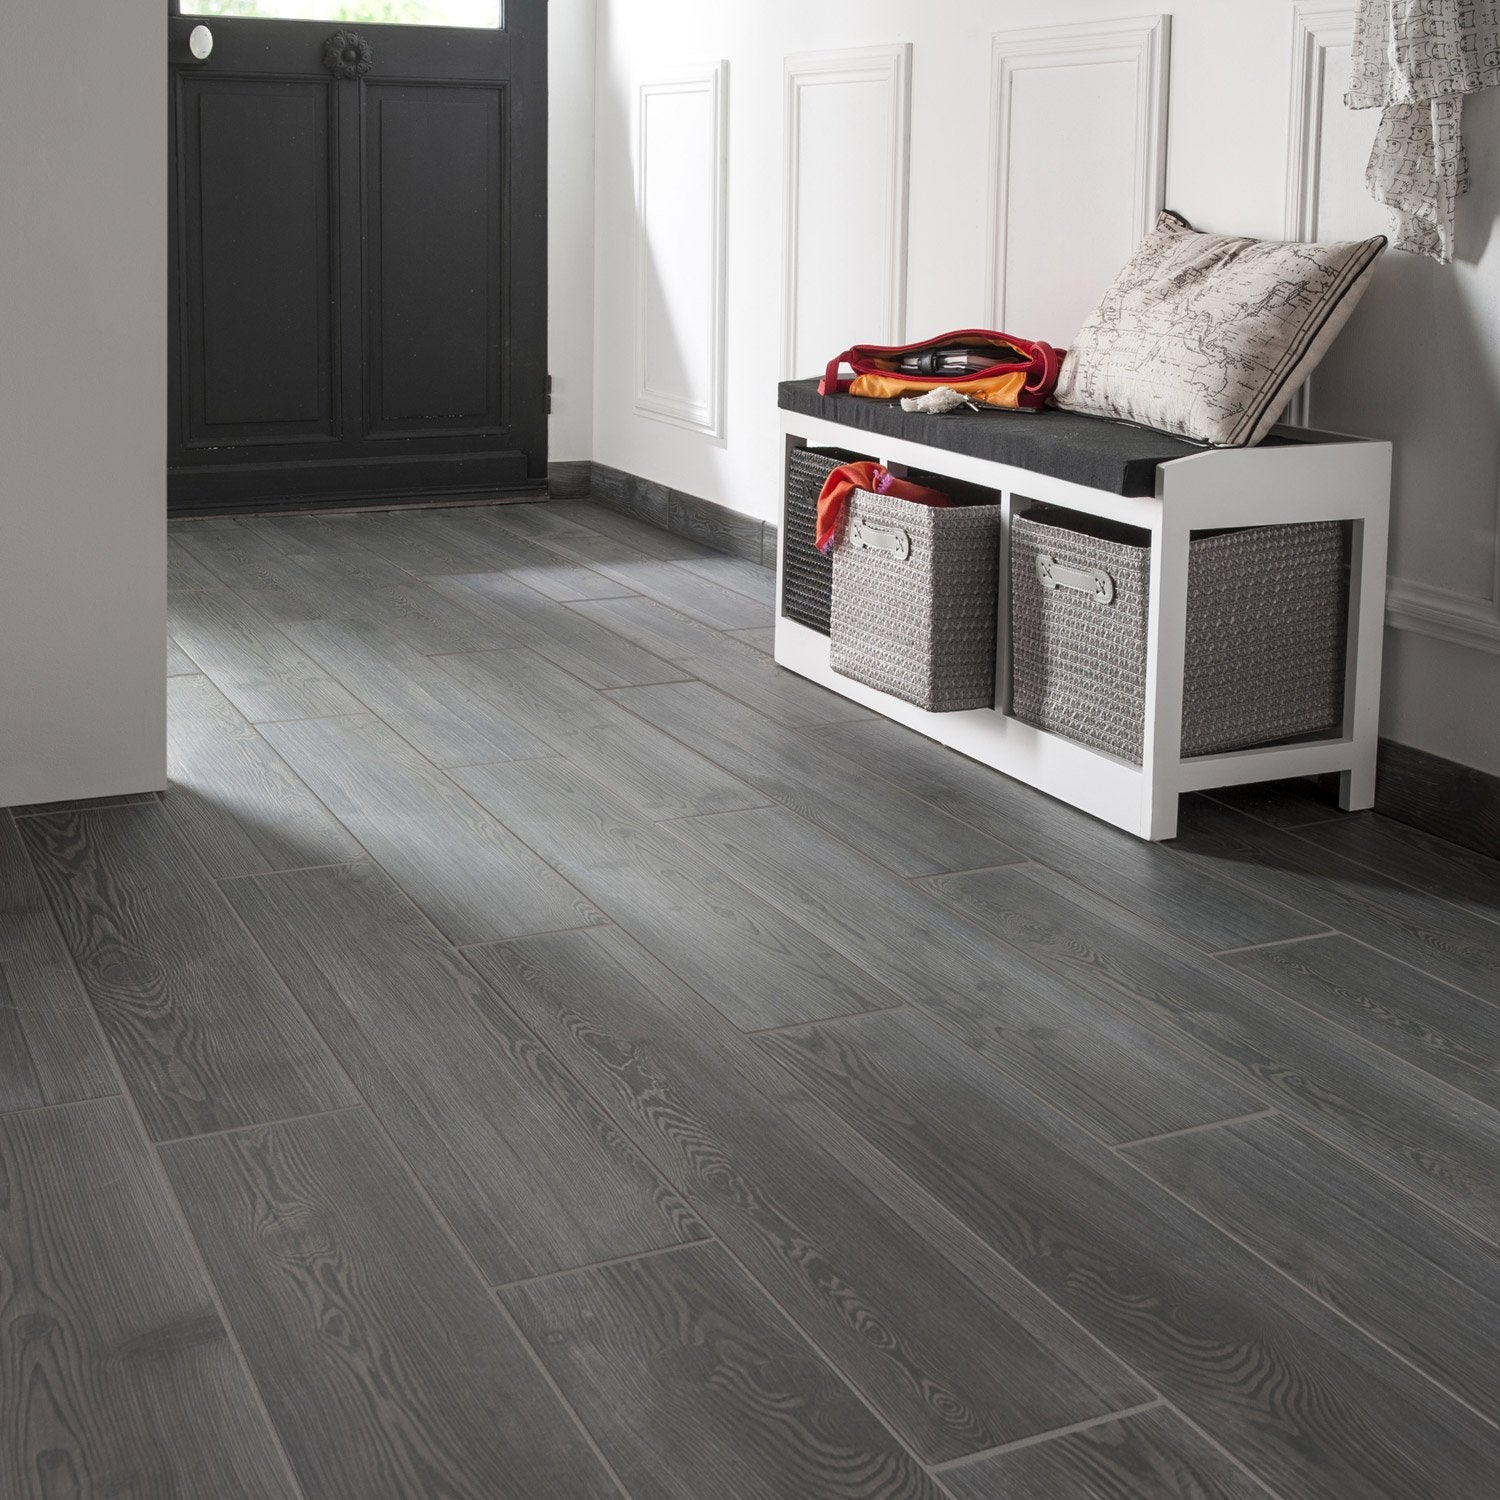 Carrelage imitation parquet gris anthracite photos de for Carrelage gris anthracite